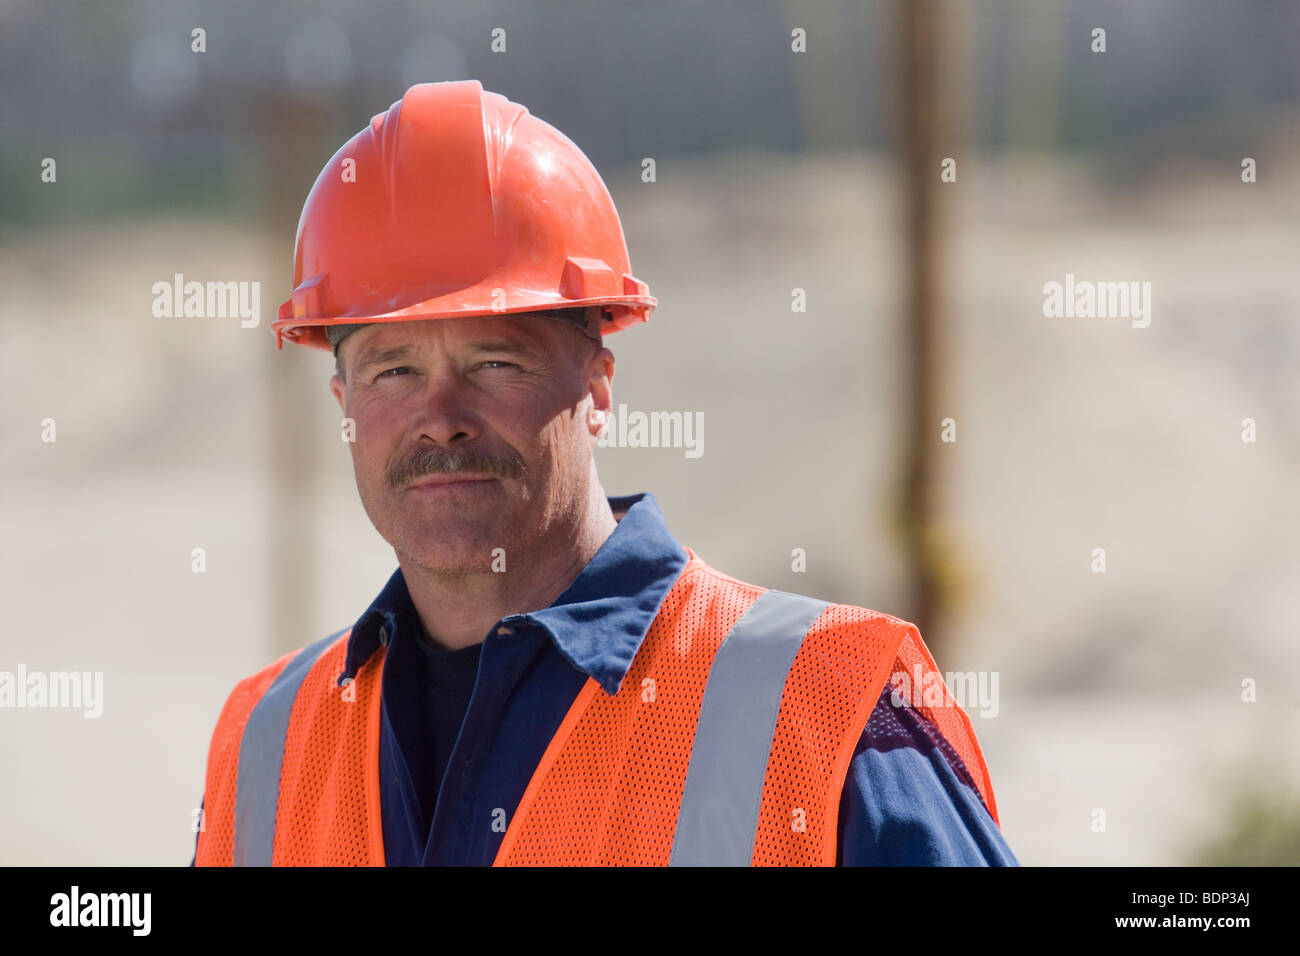 Engineer at a plant - Stock Image